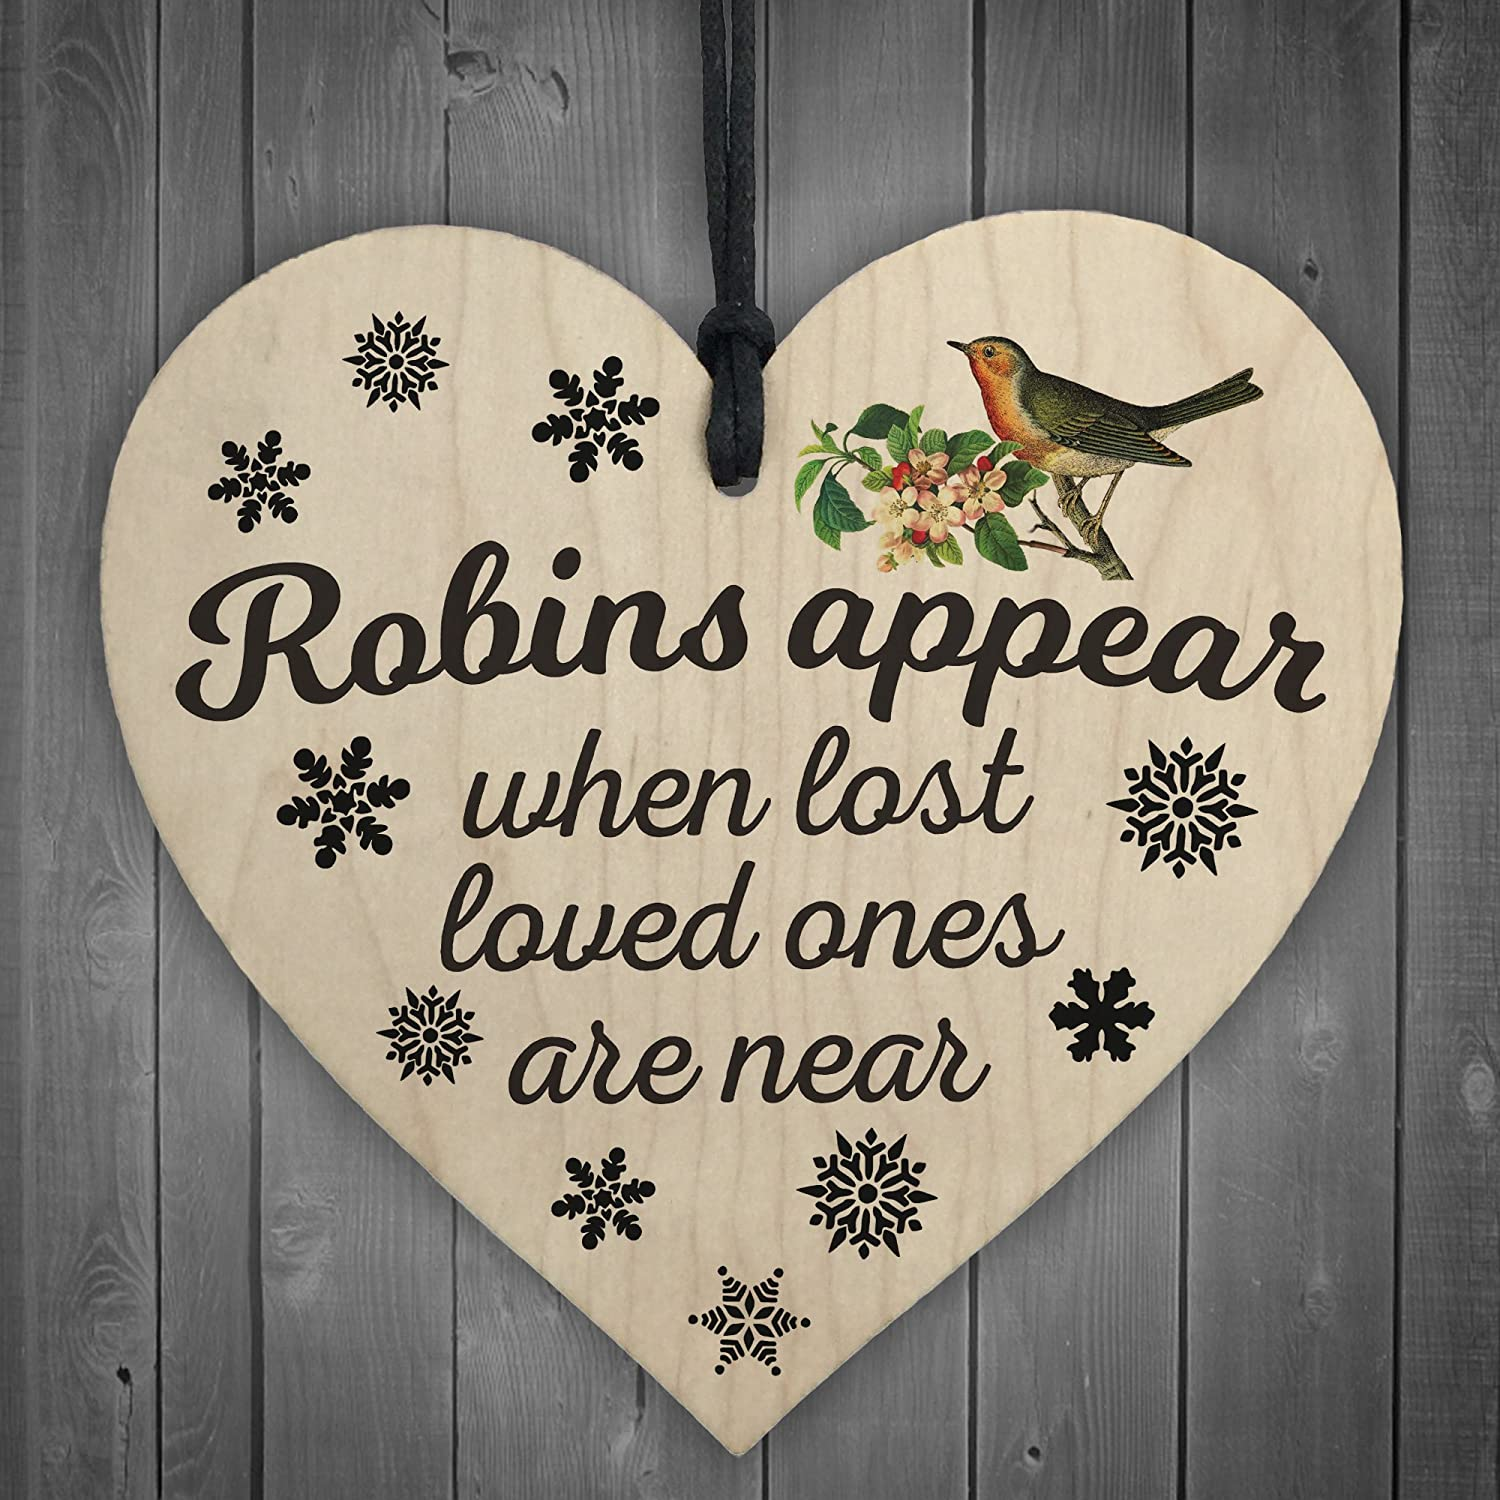 Ornaments for loved ones lost - Red Ocean Robins Appear When Lost Loved Ones Are Near Wooden Hanging Heart Memorial Christmas Tree